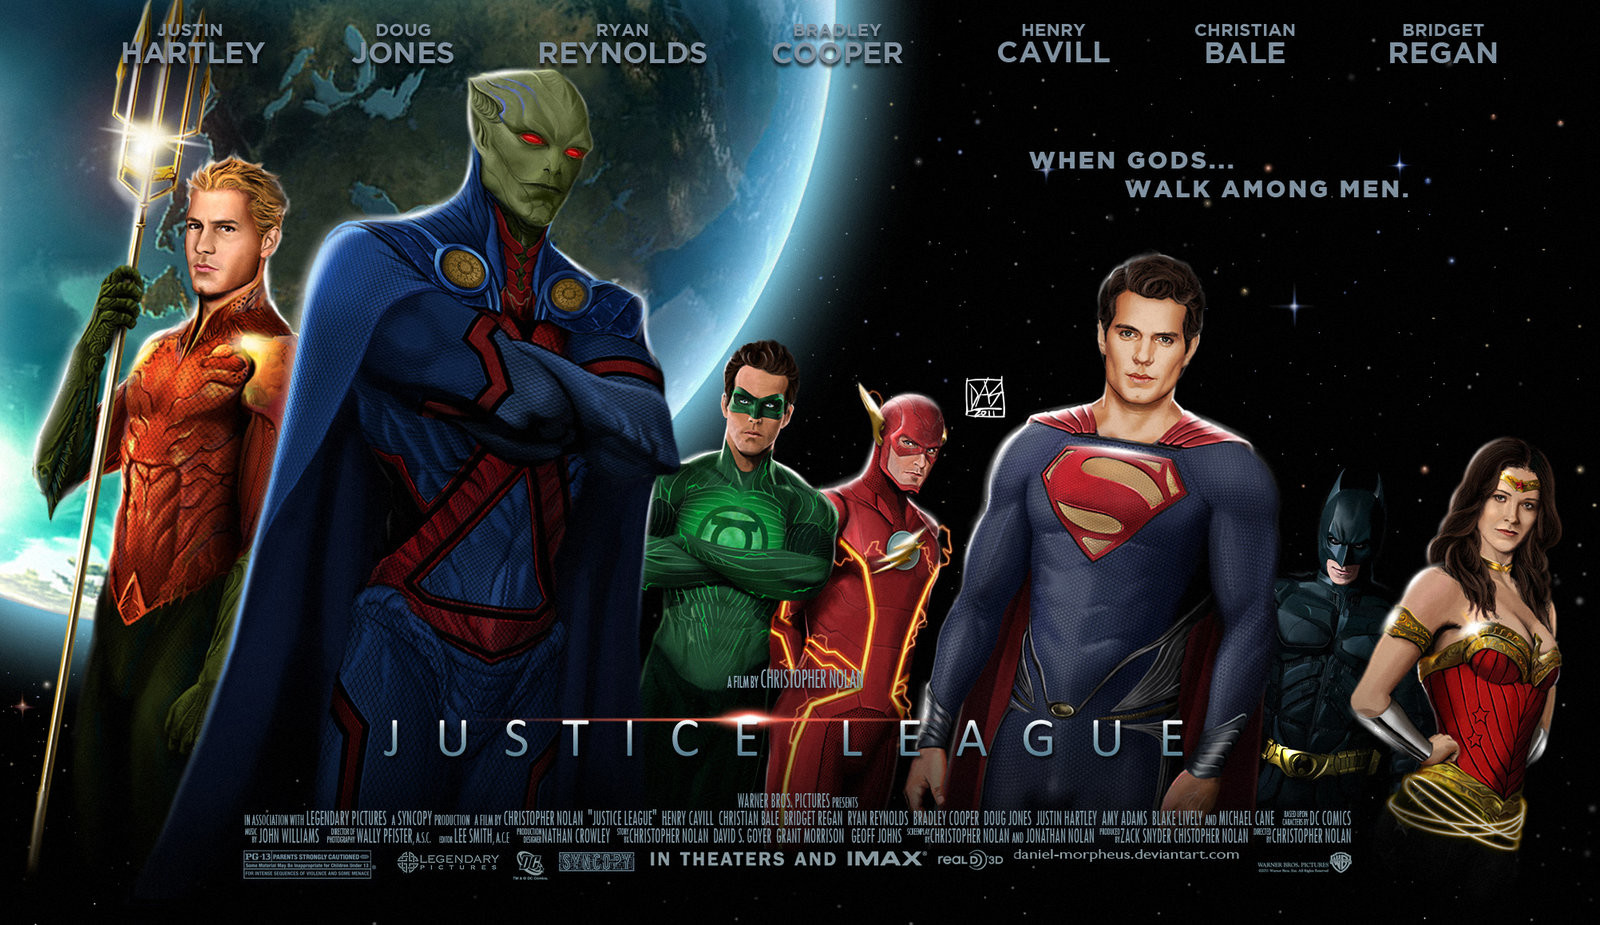 Daniel de almeida e silva justice league movie poster by daniel morpheus d4ga8dj